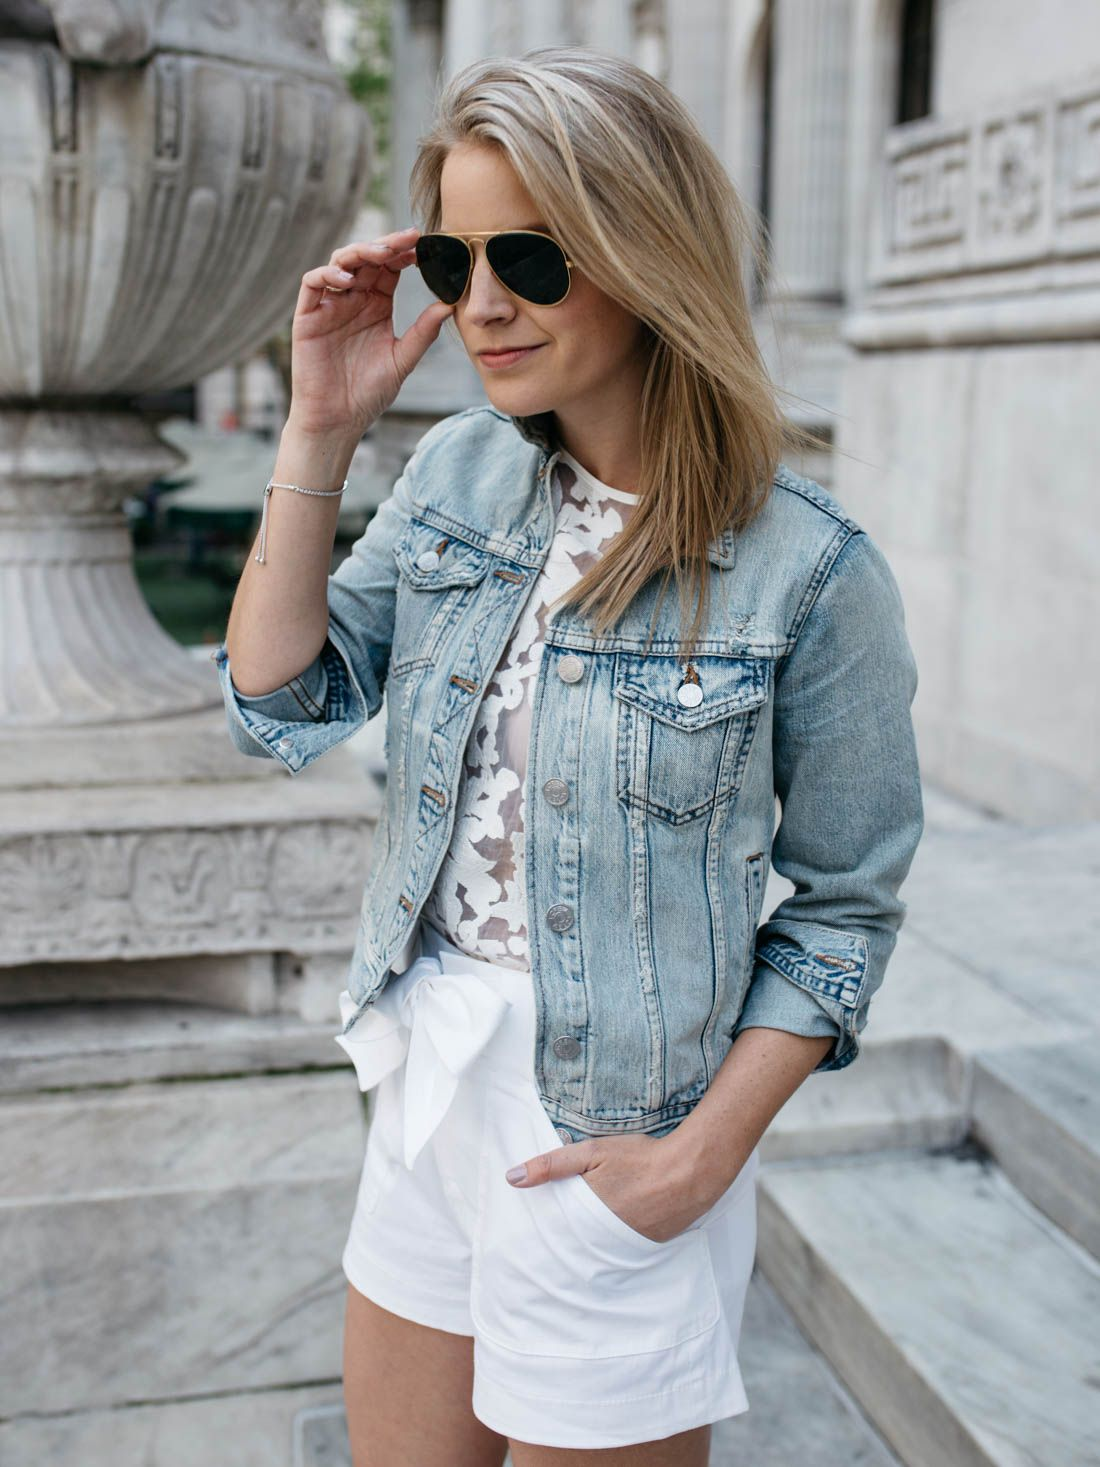 44e8544da98 denim jacket with white shorts and simple accessories creates a classic  summer look.  JaredTimelessMoments  ad